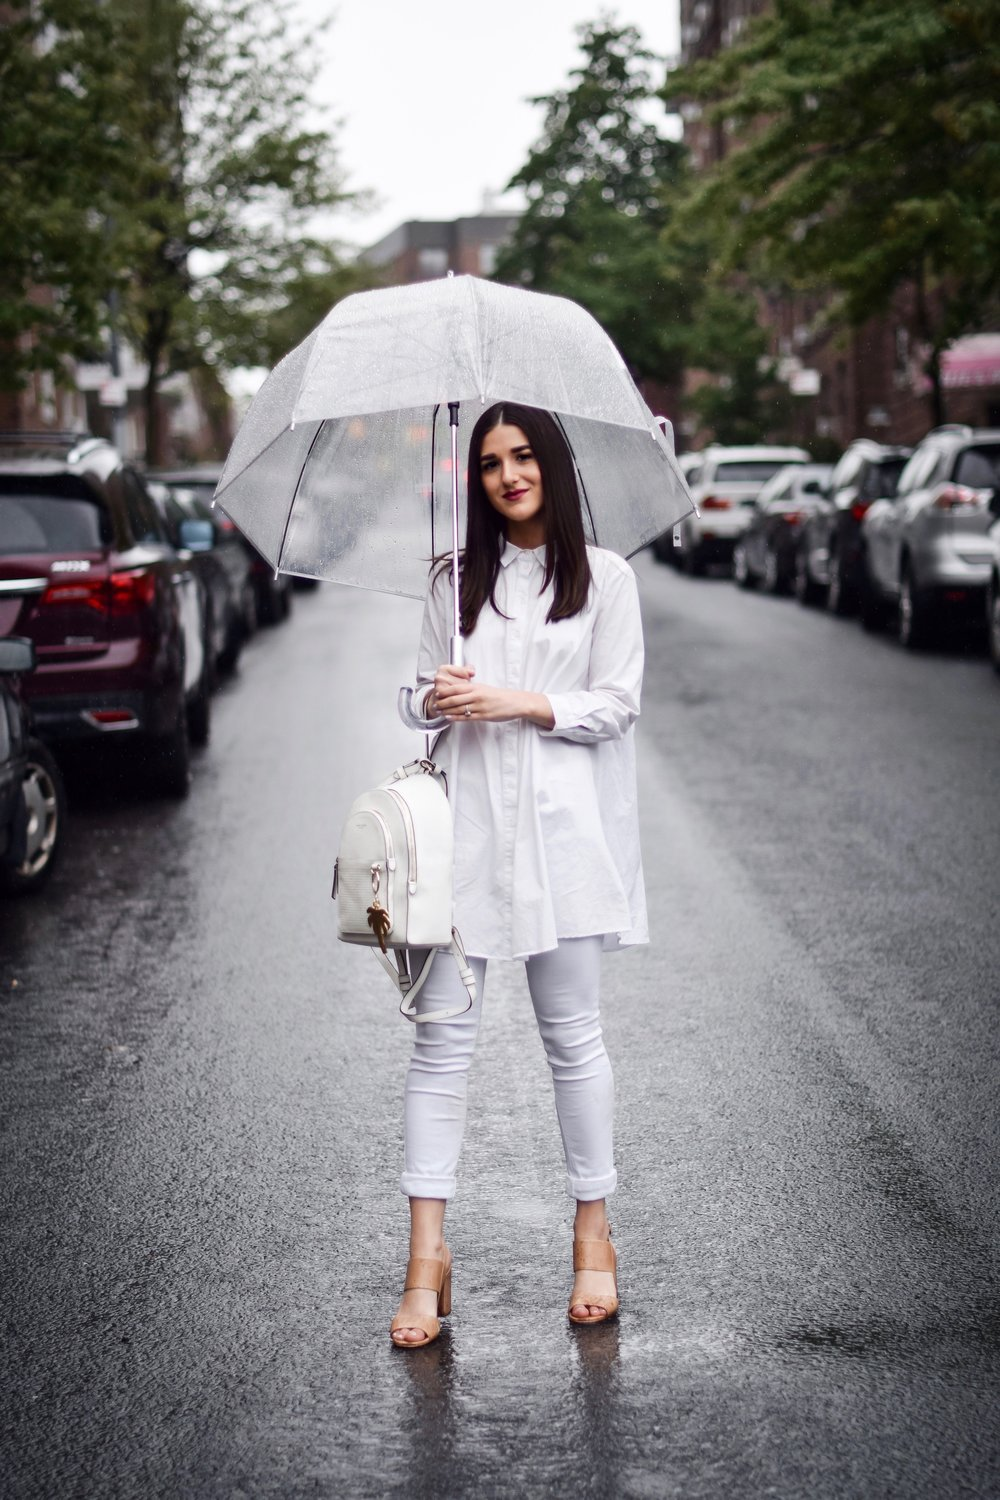 Why I Won't Be Bringing My Camera Or Laptop To Portugal Or Spain All White Look Esther Santer Fashion Blog NYC Street Style Blogger Outfit OOTD Trendy Shopping Umbrella Rainy Day Button Down Sandals Heels Zara Pants Straight Hair Travel Women New York.jpg